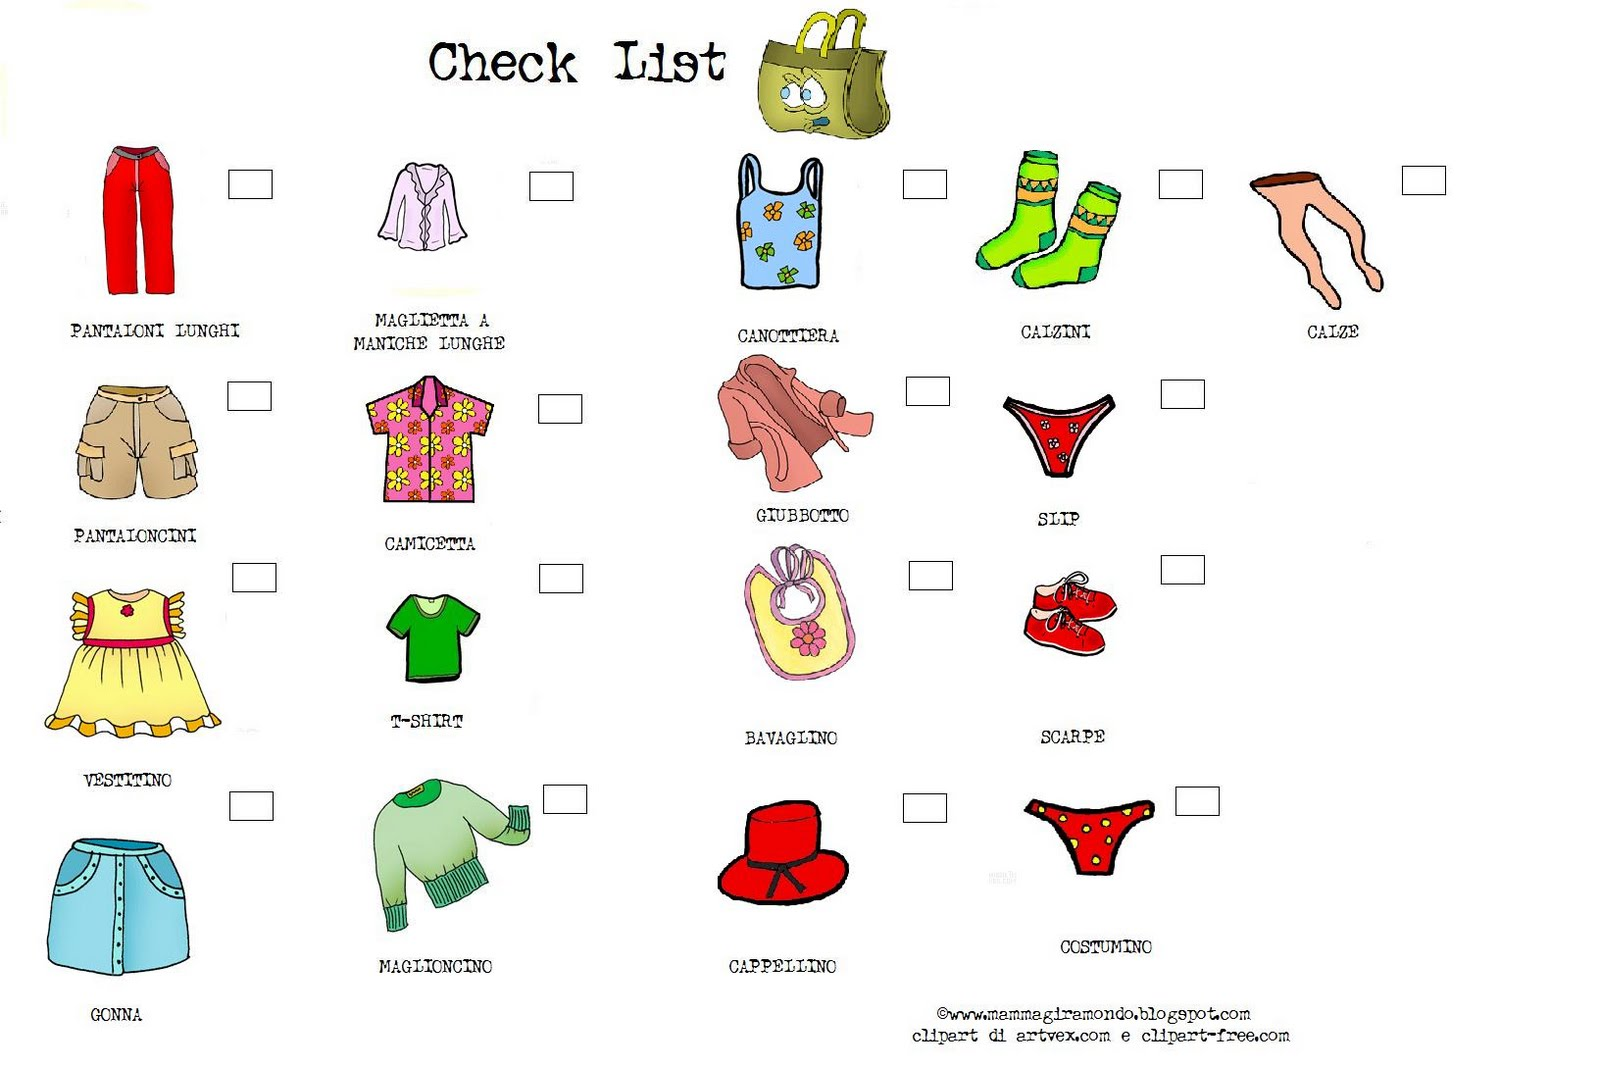 Preparare La Valigia Con I Bambini Packing Check List For